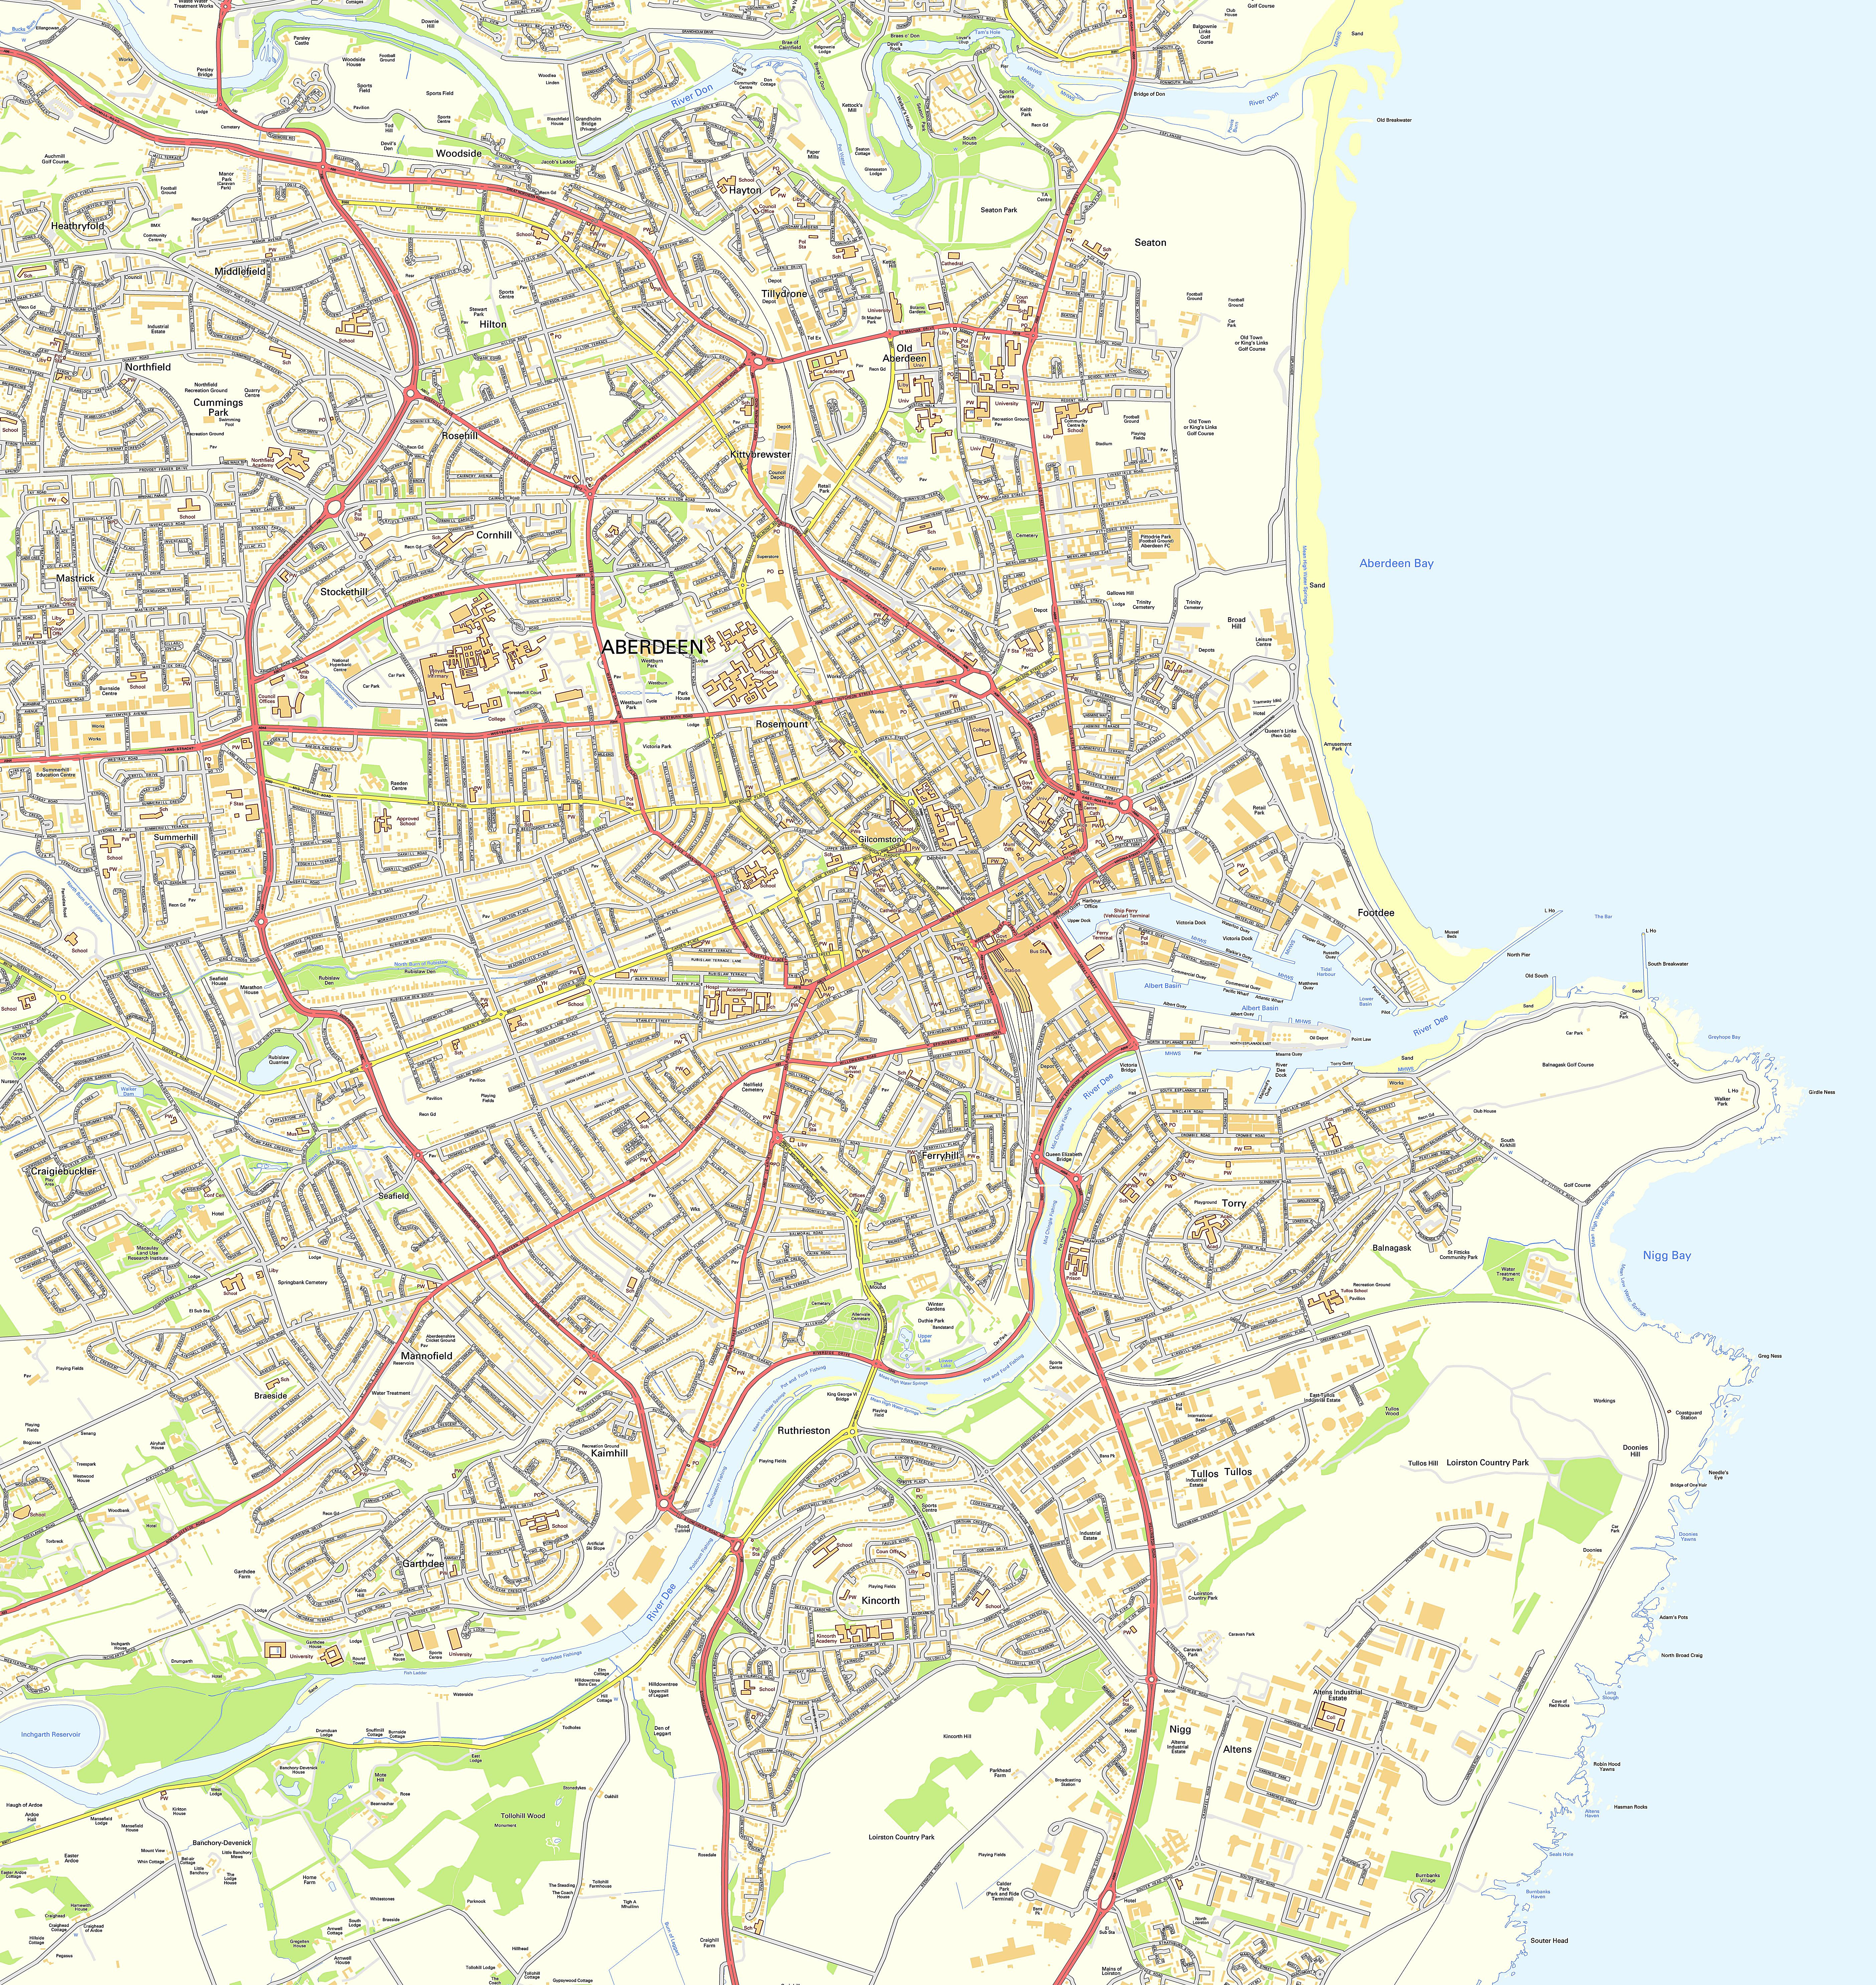 Map Of Aberdeen Large Aberdeen Maps for Free Download and Print | High Resolution  Map Of Aberdeen